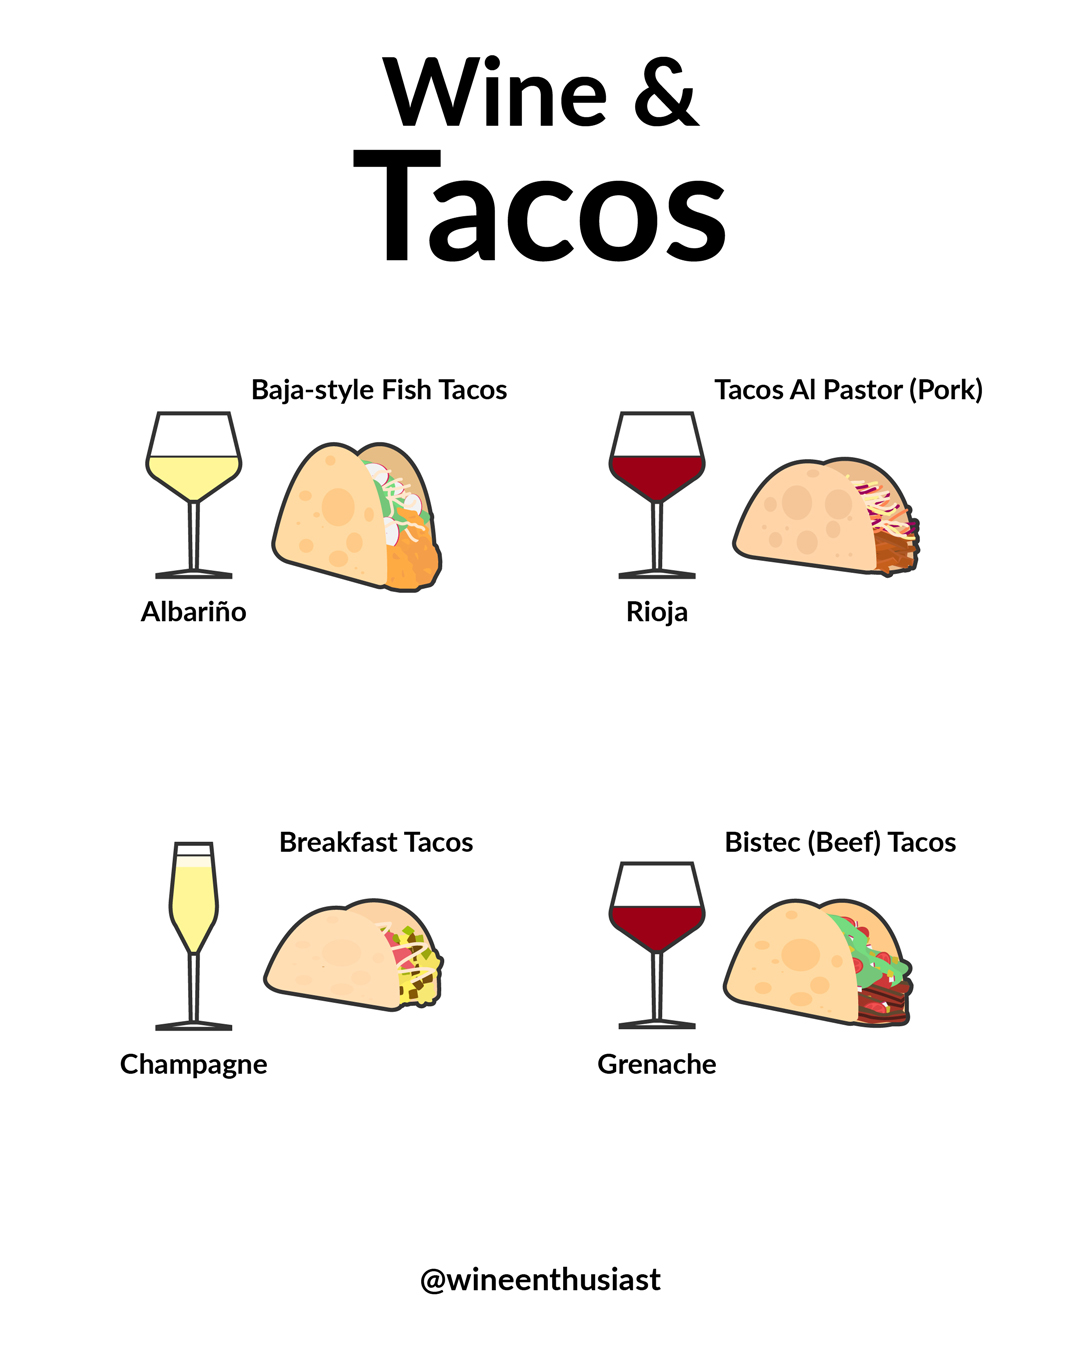 Wine and tacos